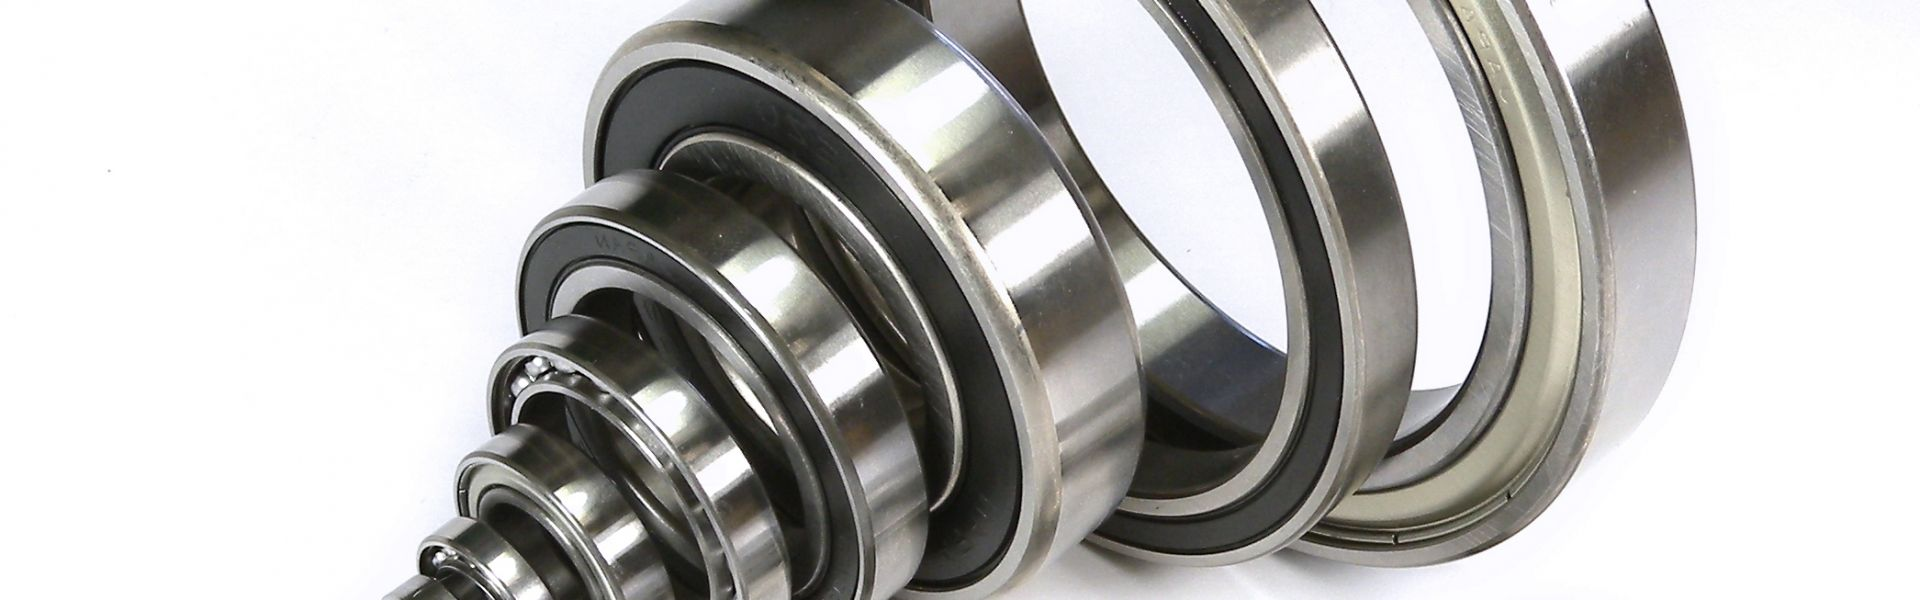 SMB Bearings, EZO bearings, Bearing Relubrication Services